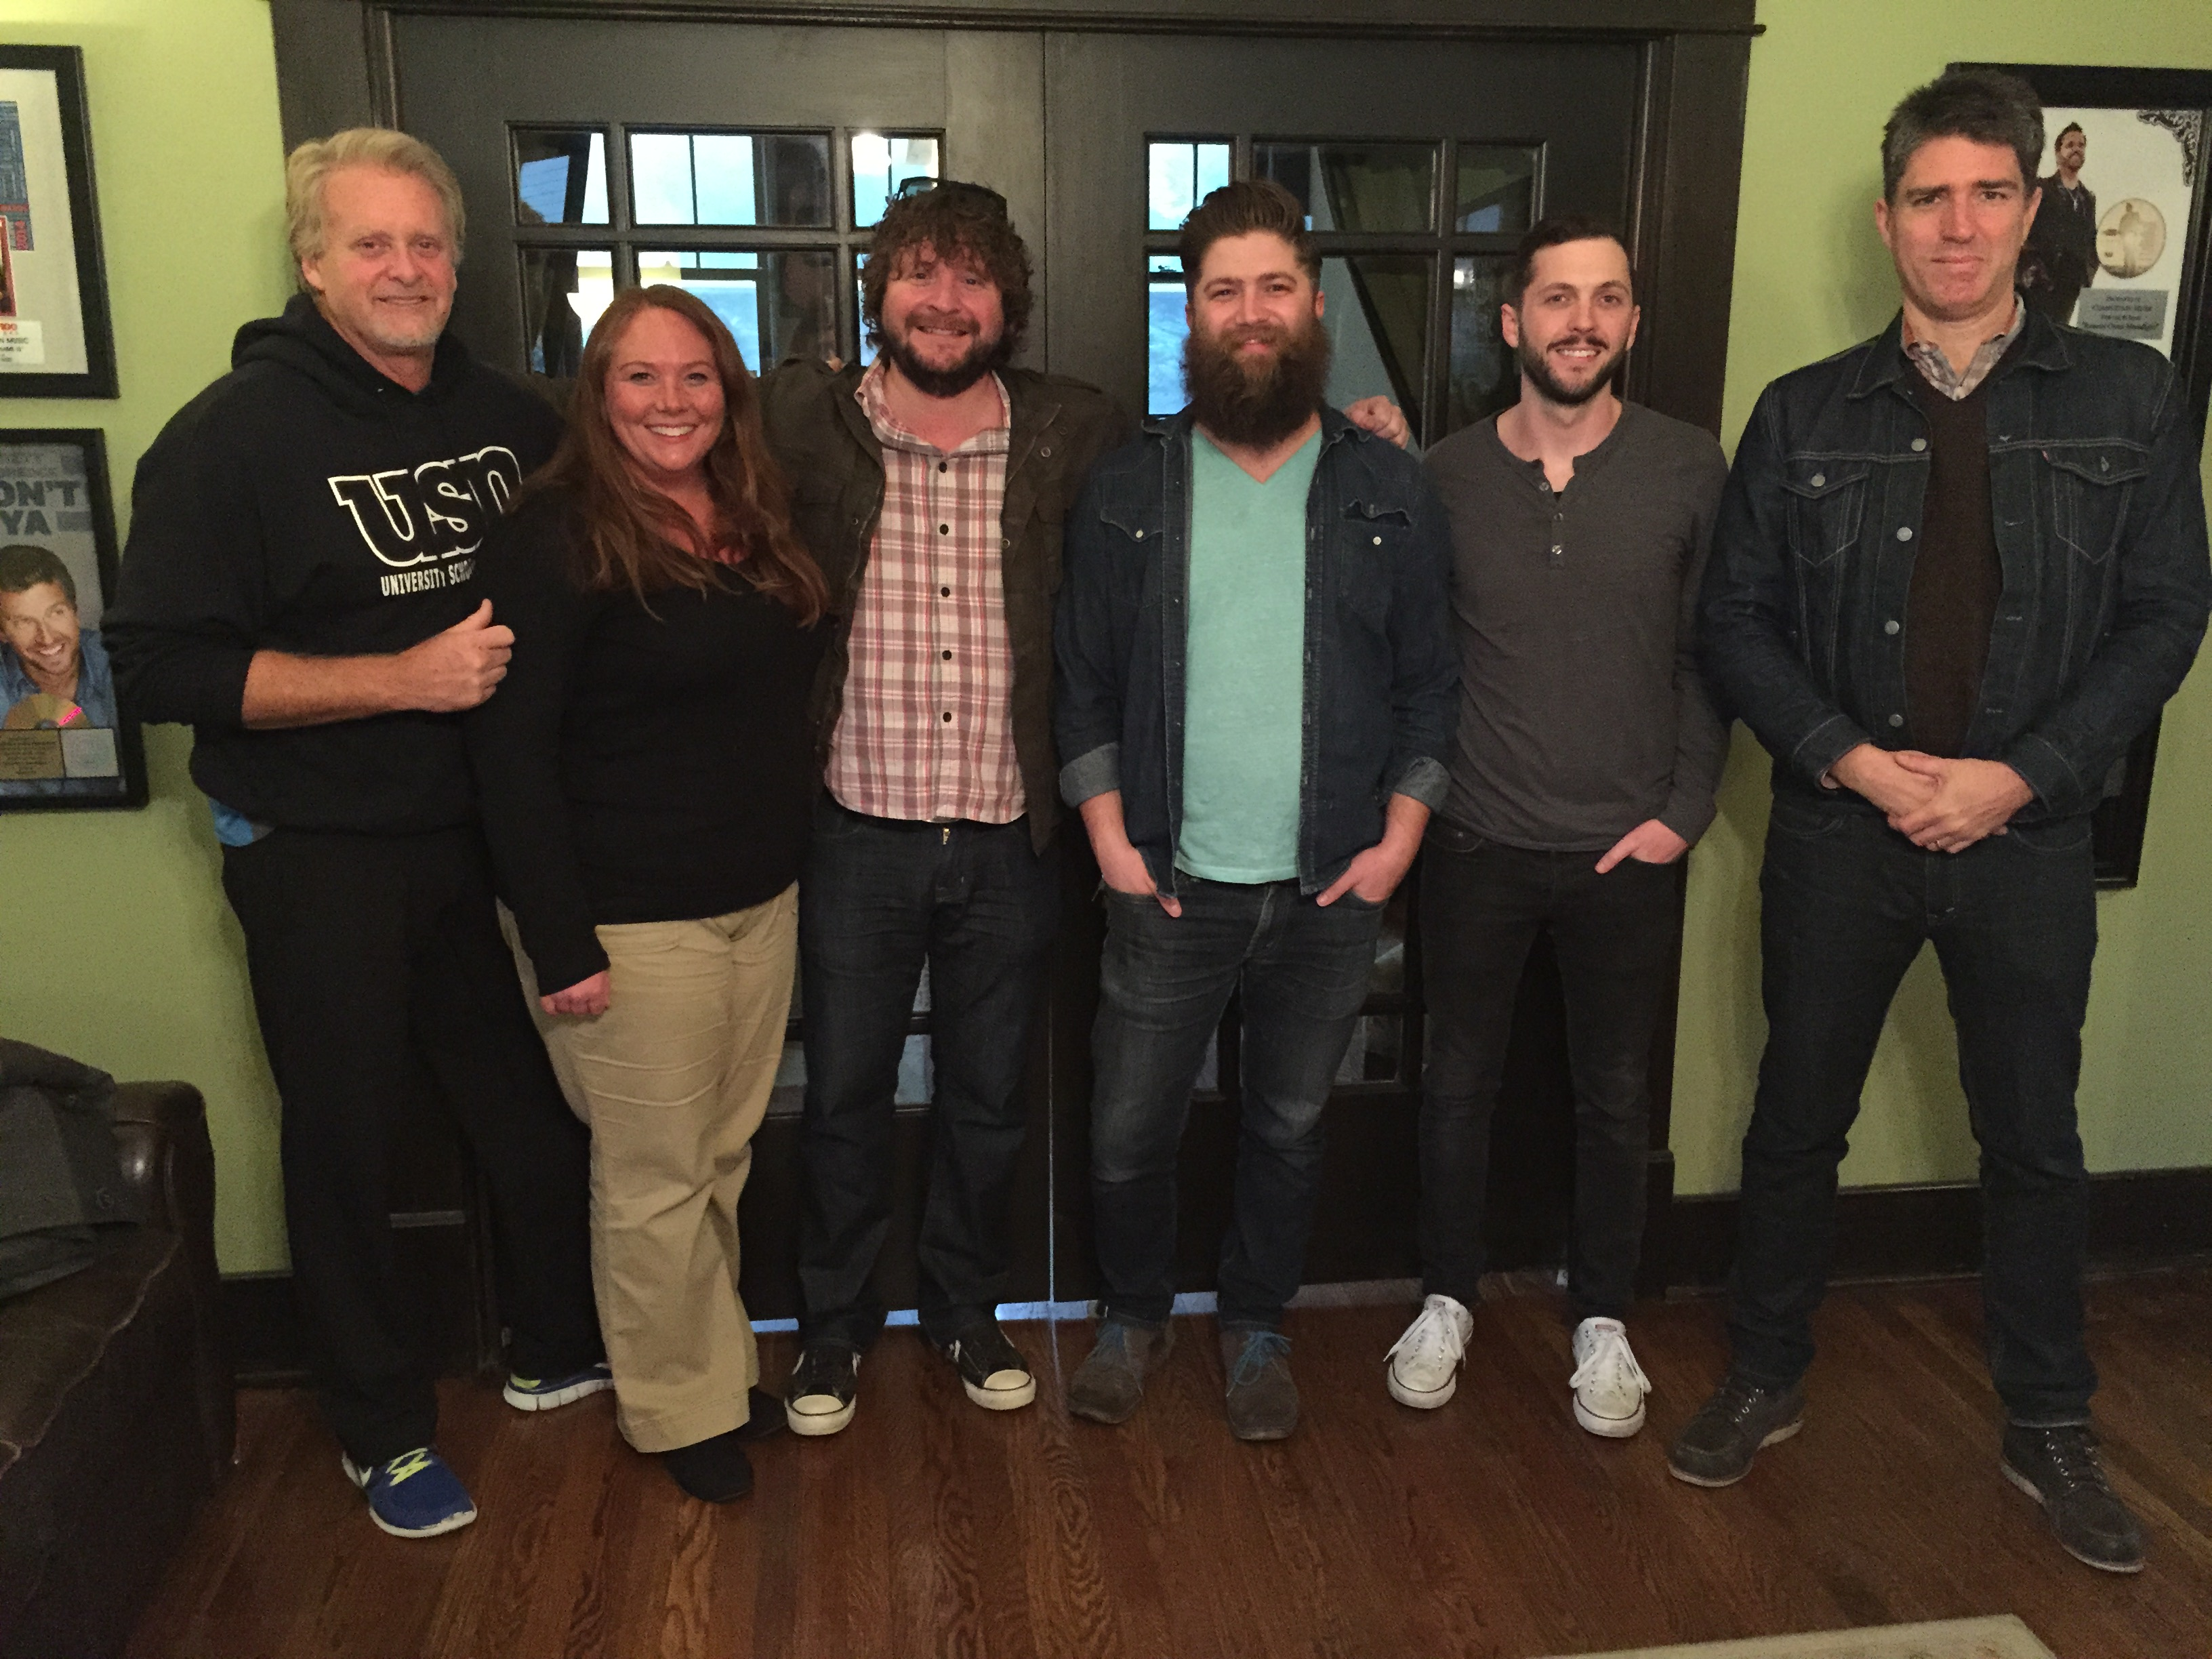 COMBUSTION MUSIC AND ATLAS MUSIC PUBLISHING SIGN LUKE FOLEY, FRONTMAN FOR FAREWELL FLIGHT